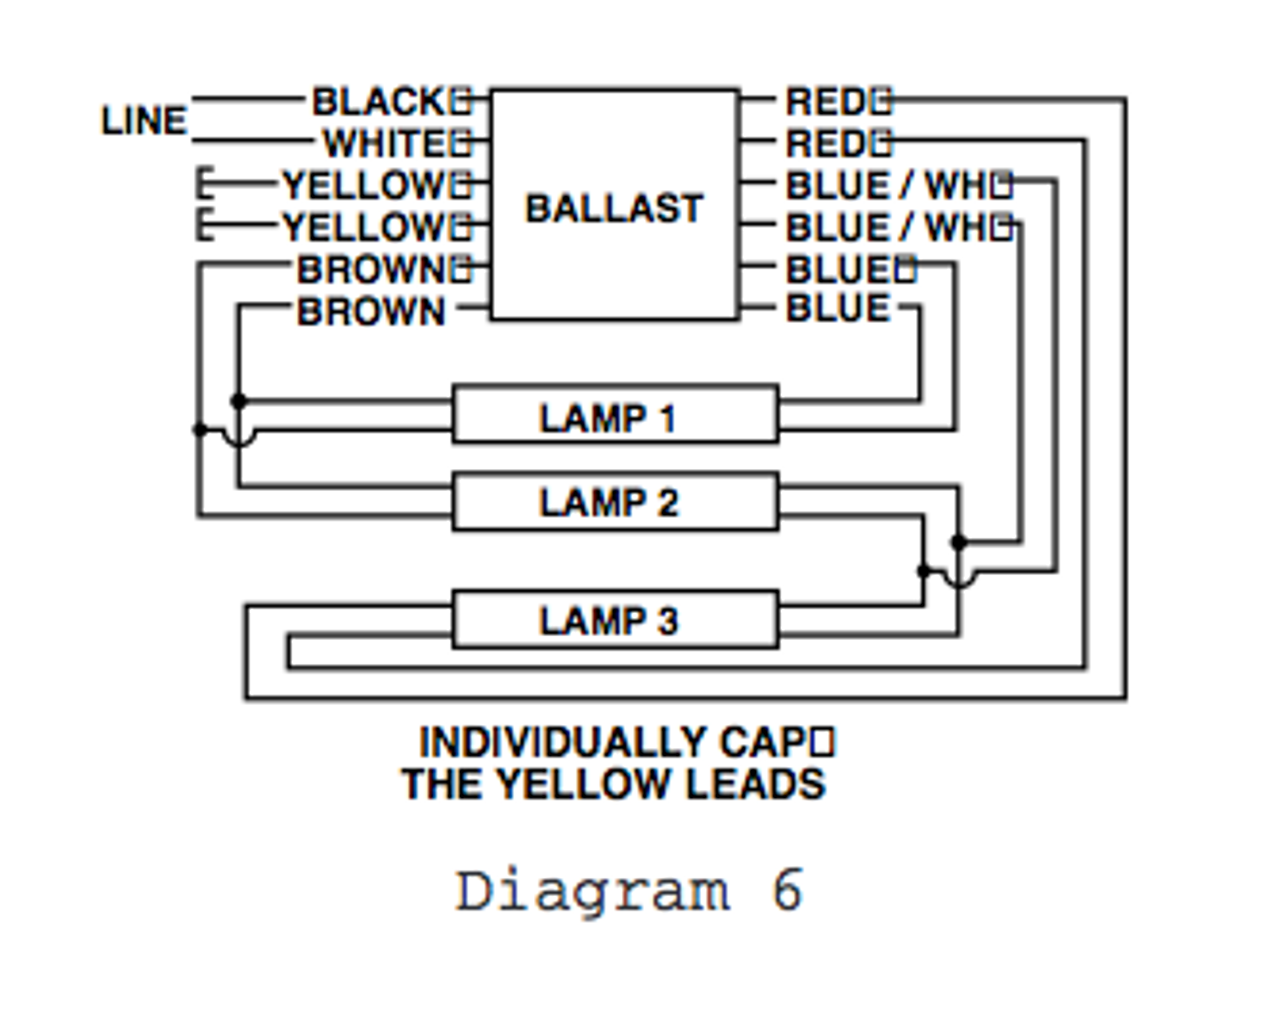 Wondrous Advance Sign Ballast Wiring Diagram Electronic Schematics Collections Wiring 101 Akebretraxxcnl